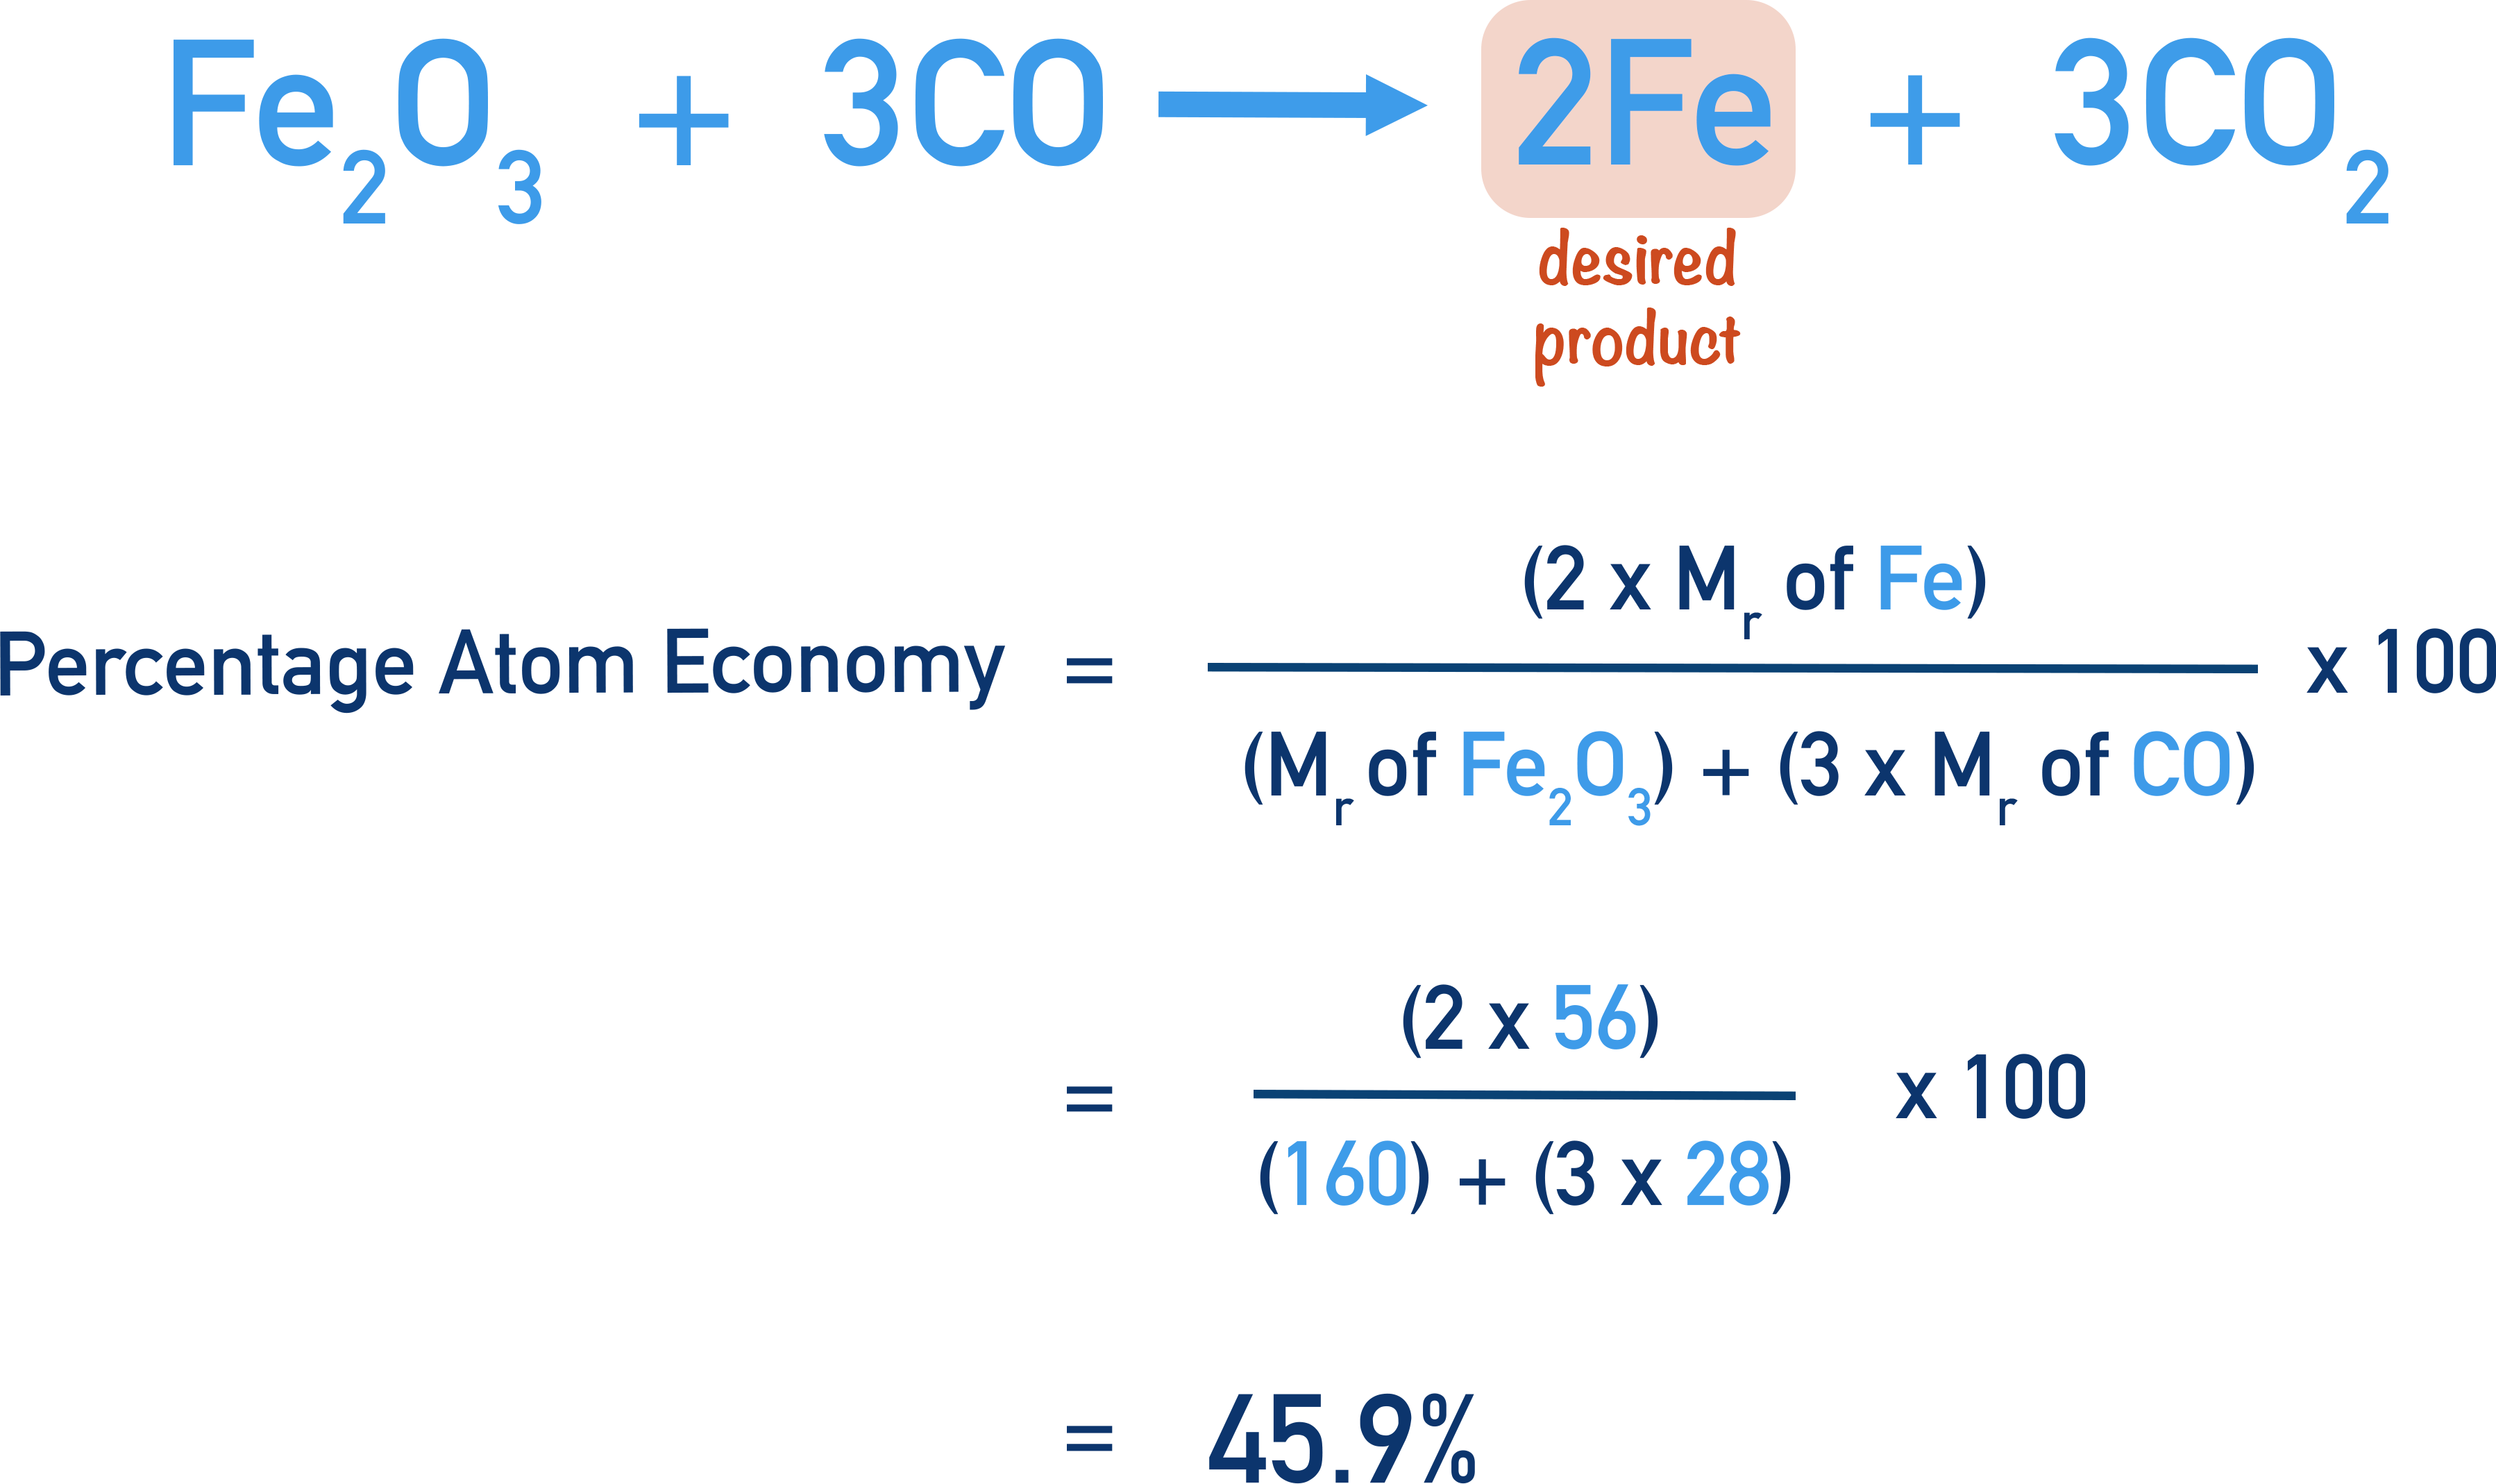 finding percentage atom economy for production of iron from iron oxide and carbon Fe + O forms Fe2O3